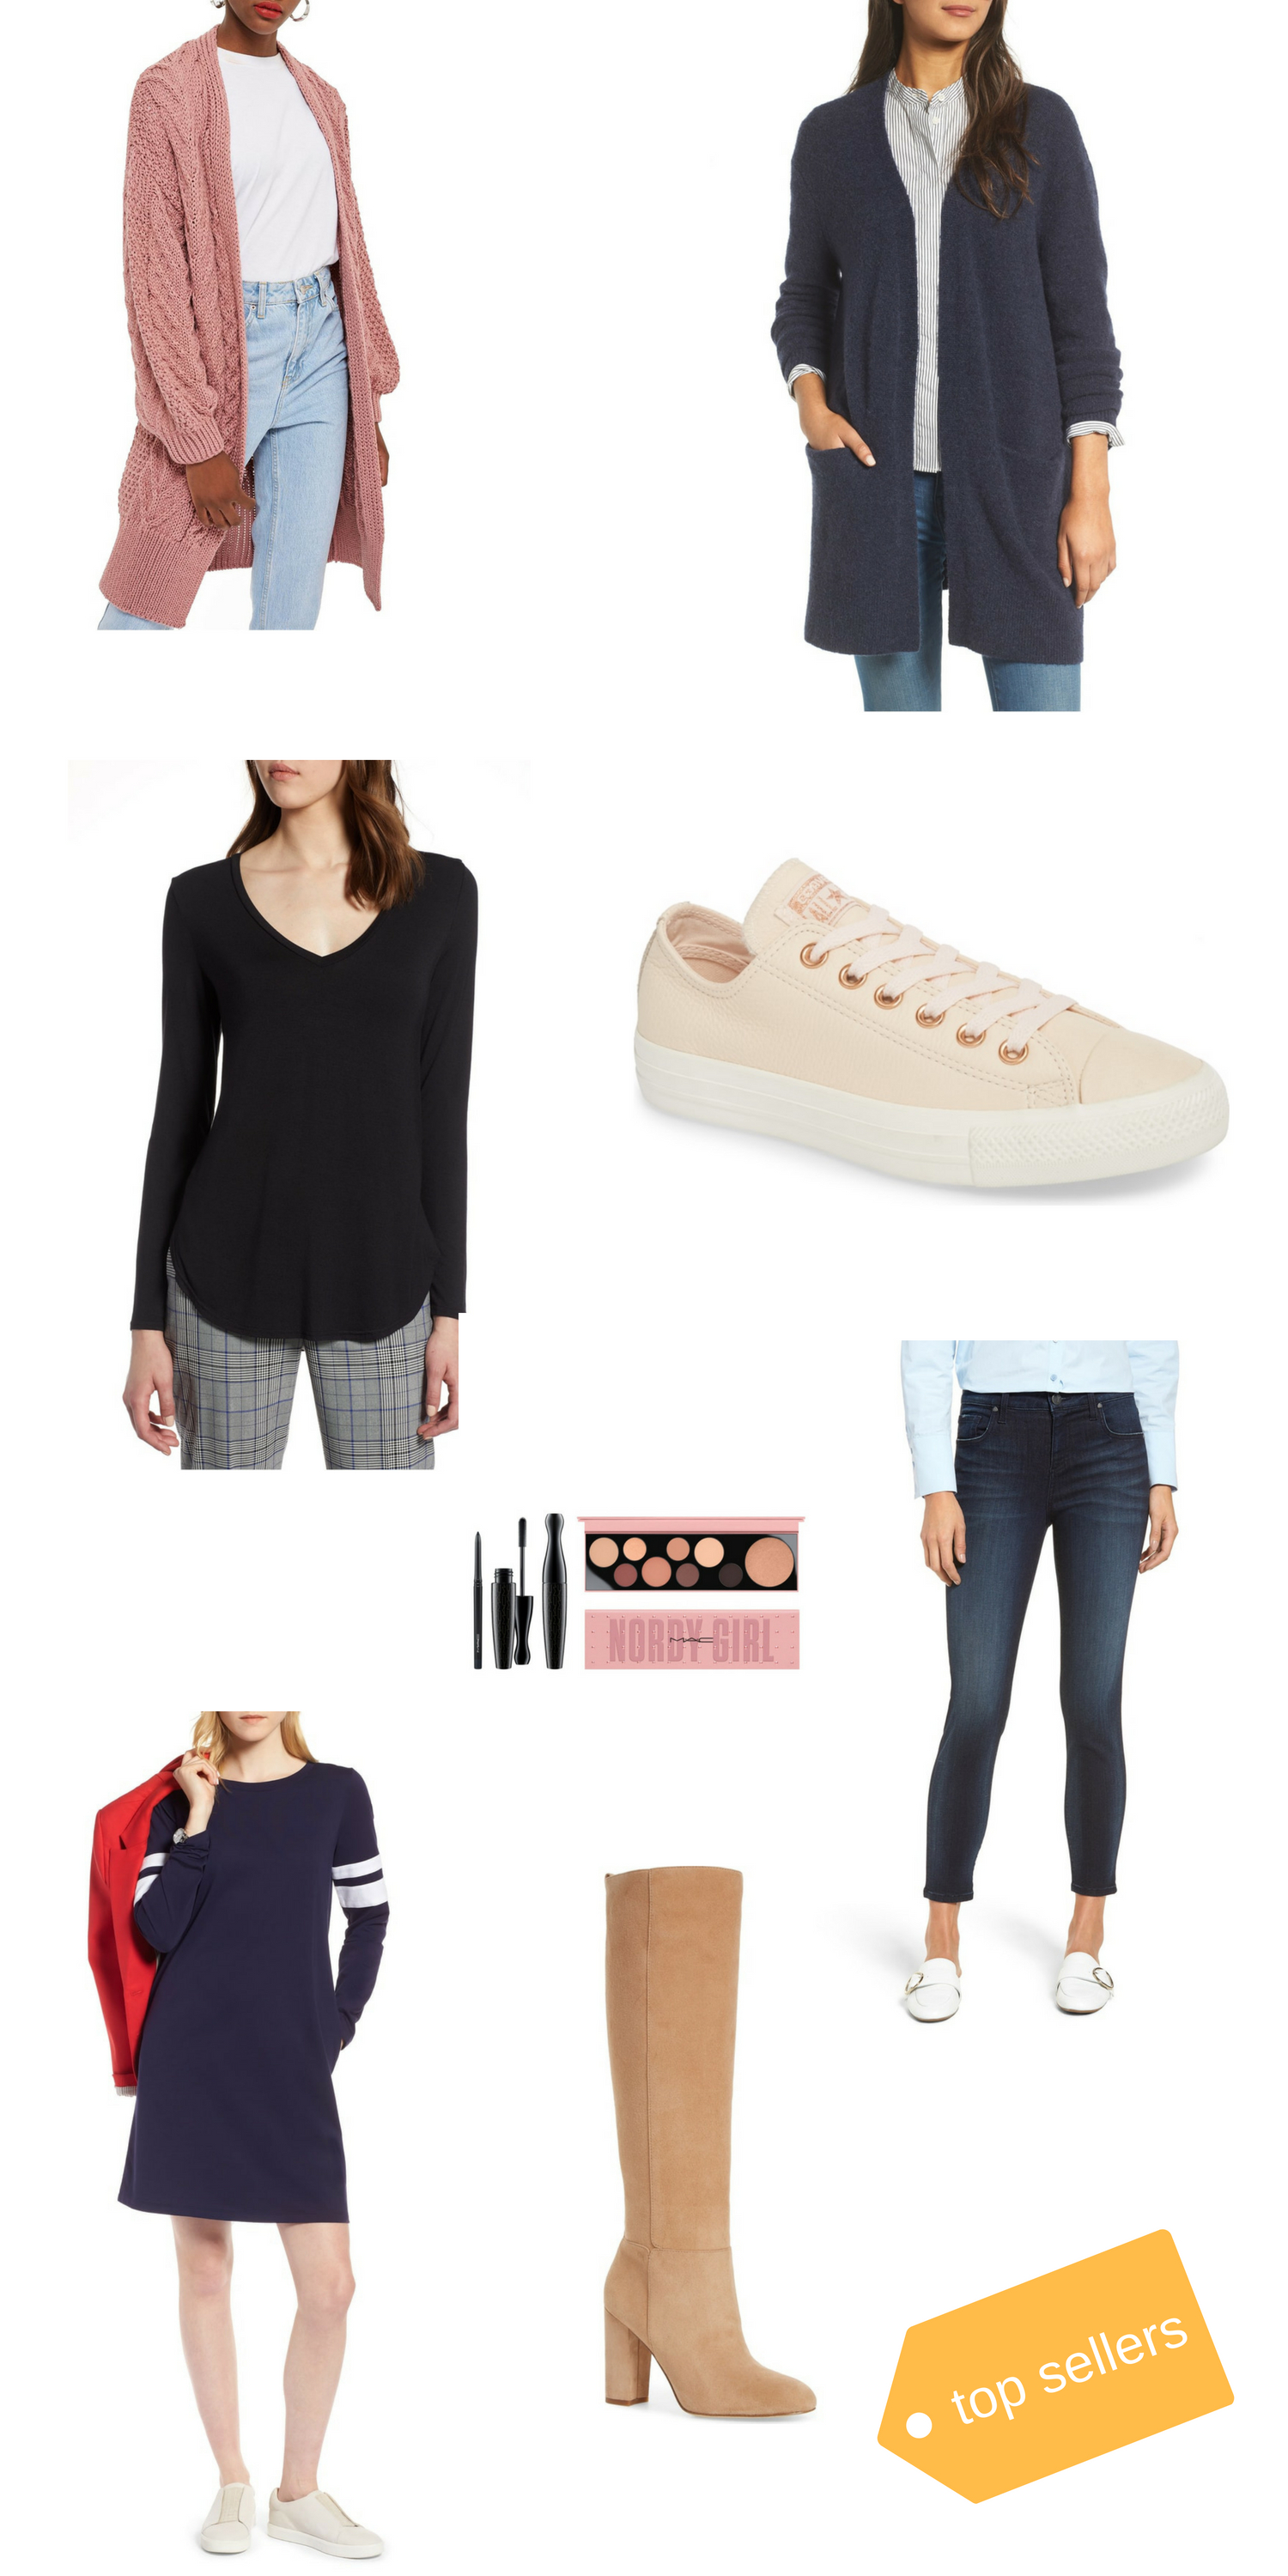 Want to see what y'all have bought the MOST from the Nordstrom Anniversary Sale? These are the top selling items I've shared, along with recommendations for a few more things that you won't want to miss!